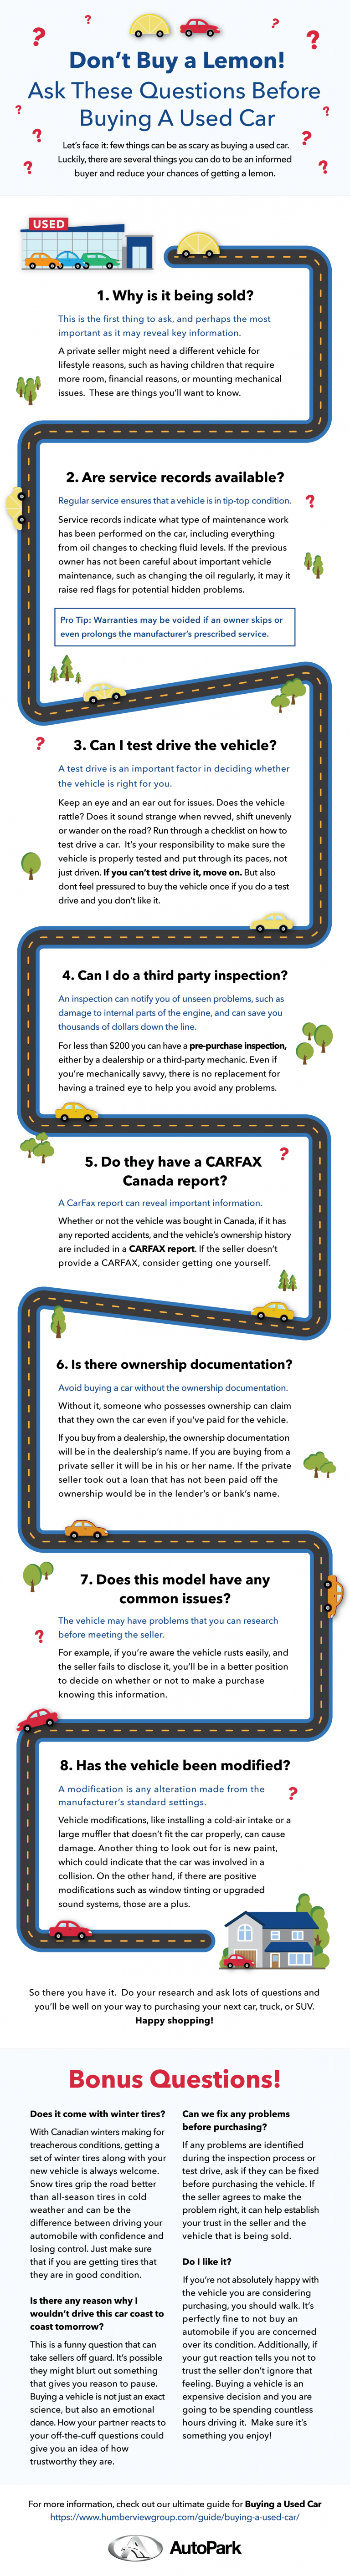 infographic explaining what questions to ask when buying a used car